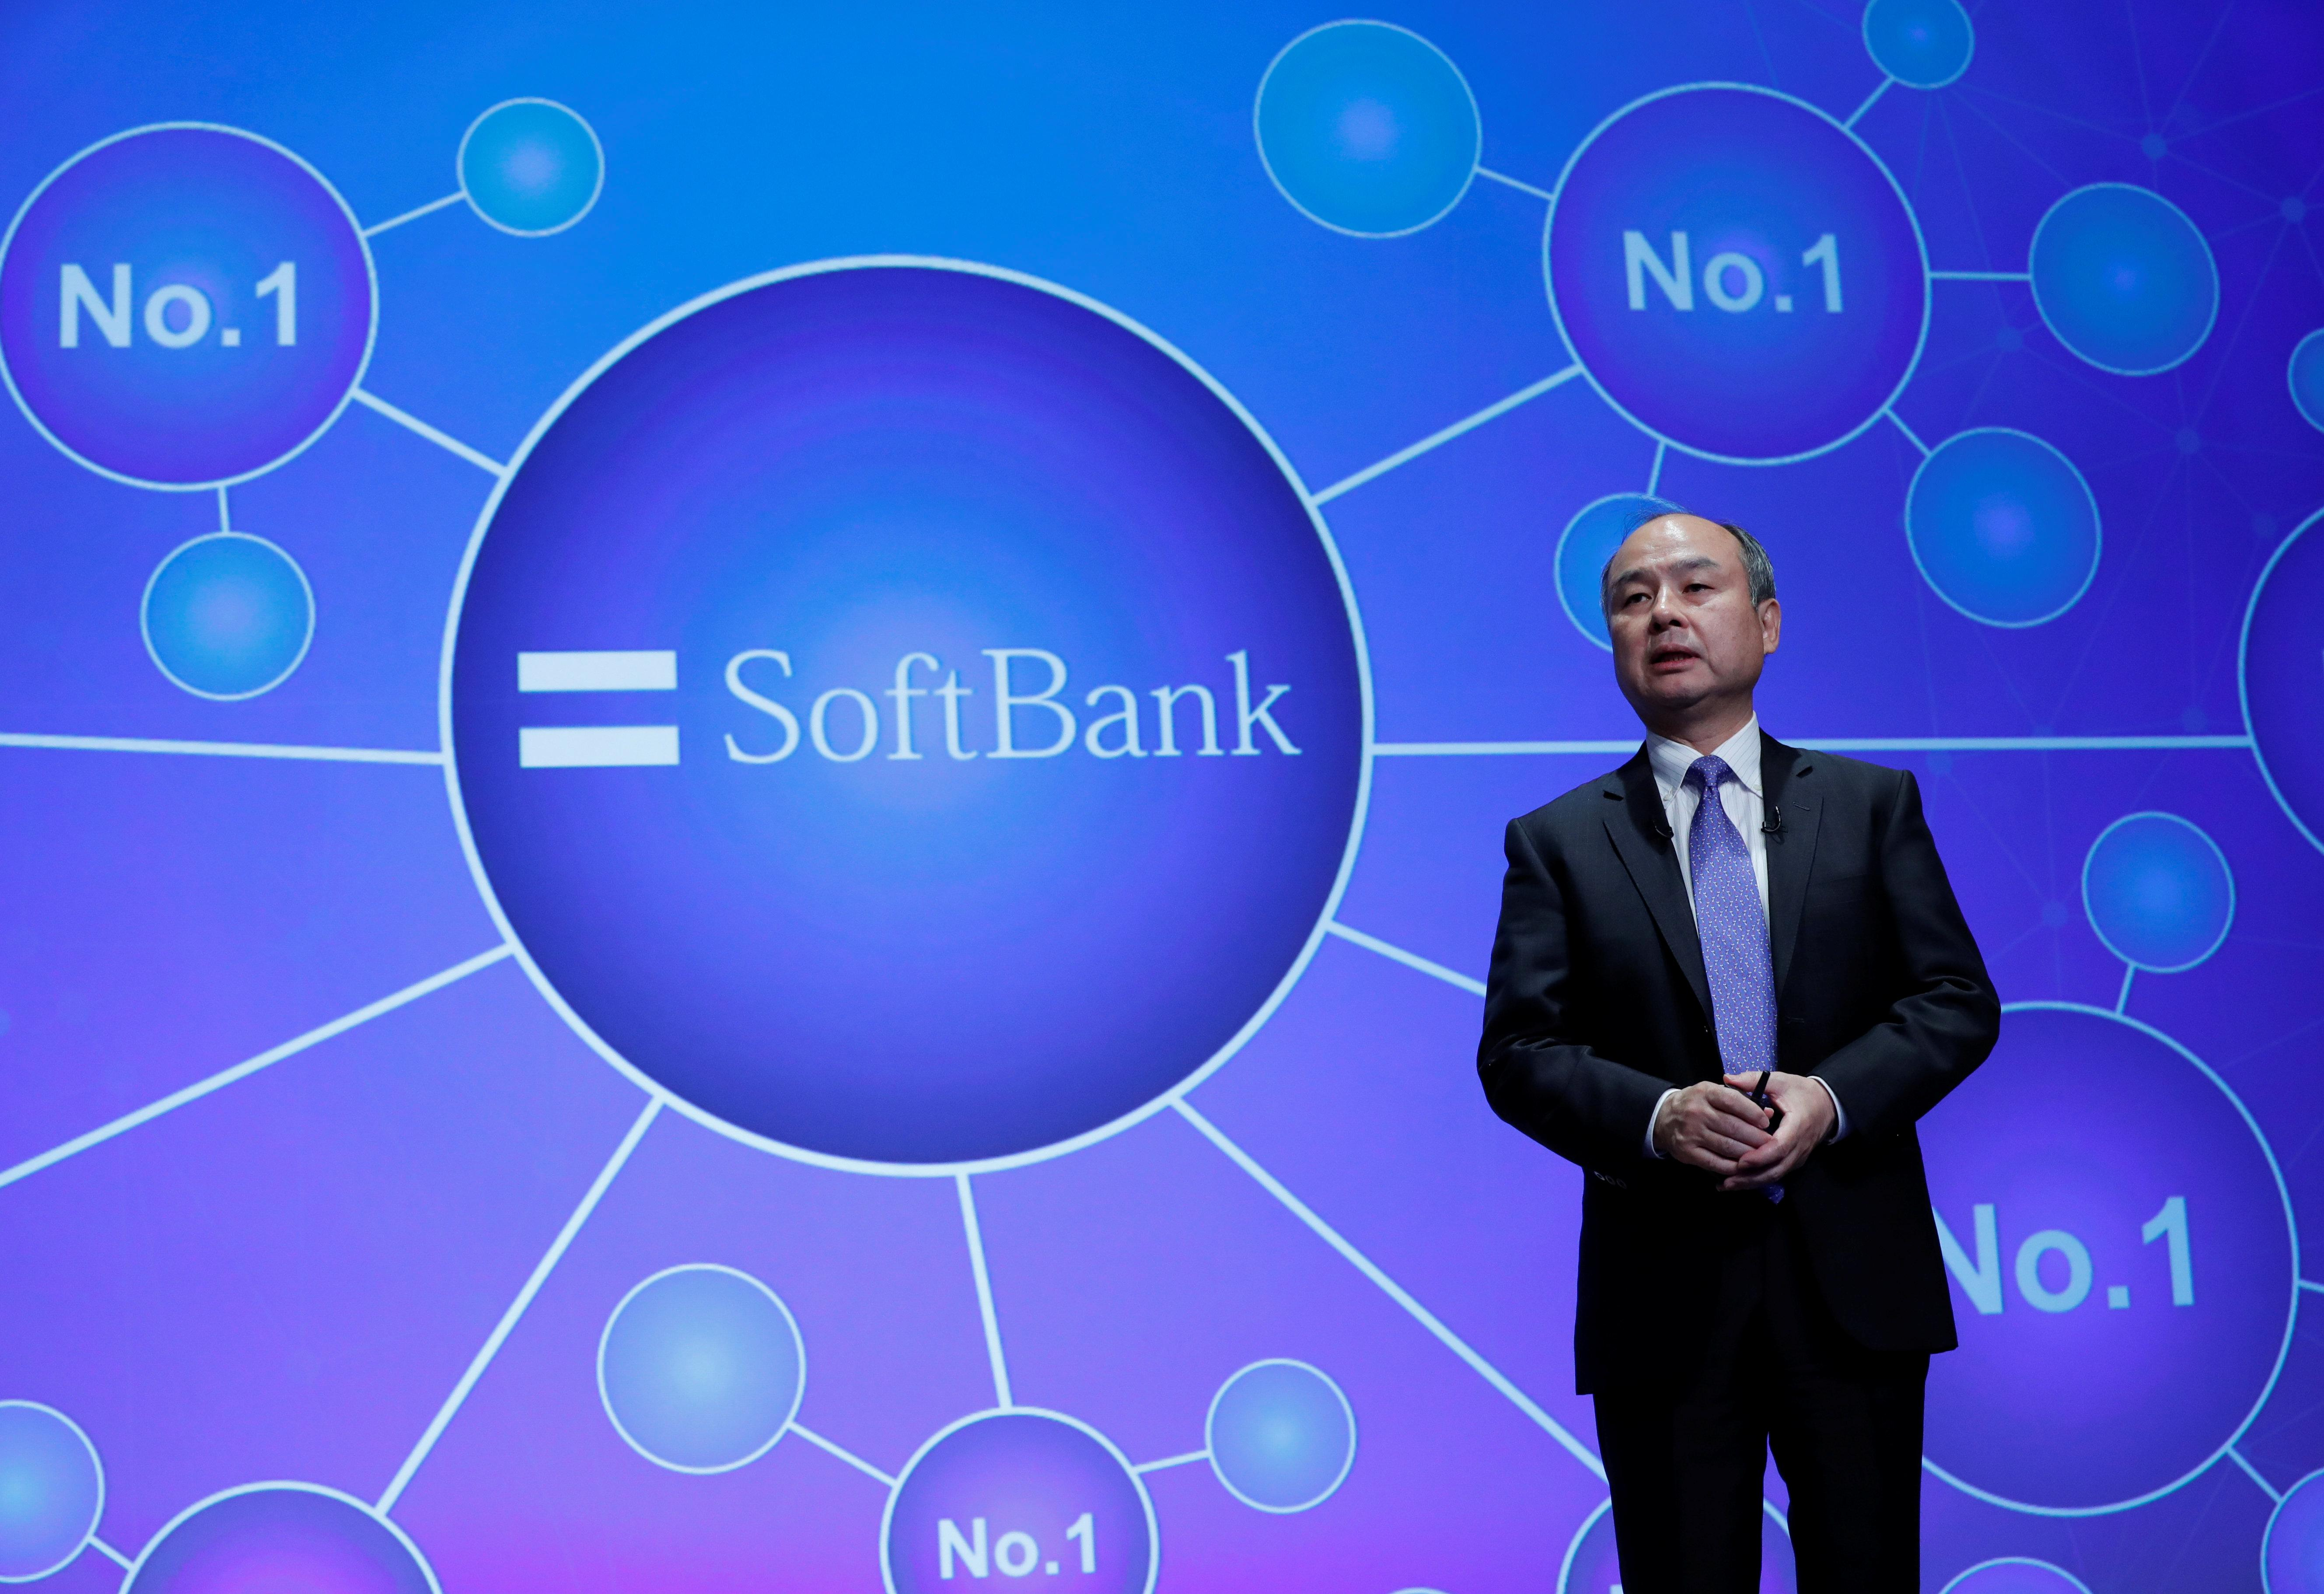 Softbank's Son says to carry out responsibility to Saudi people